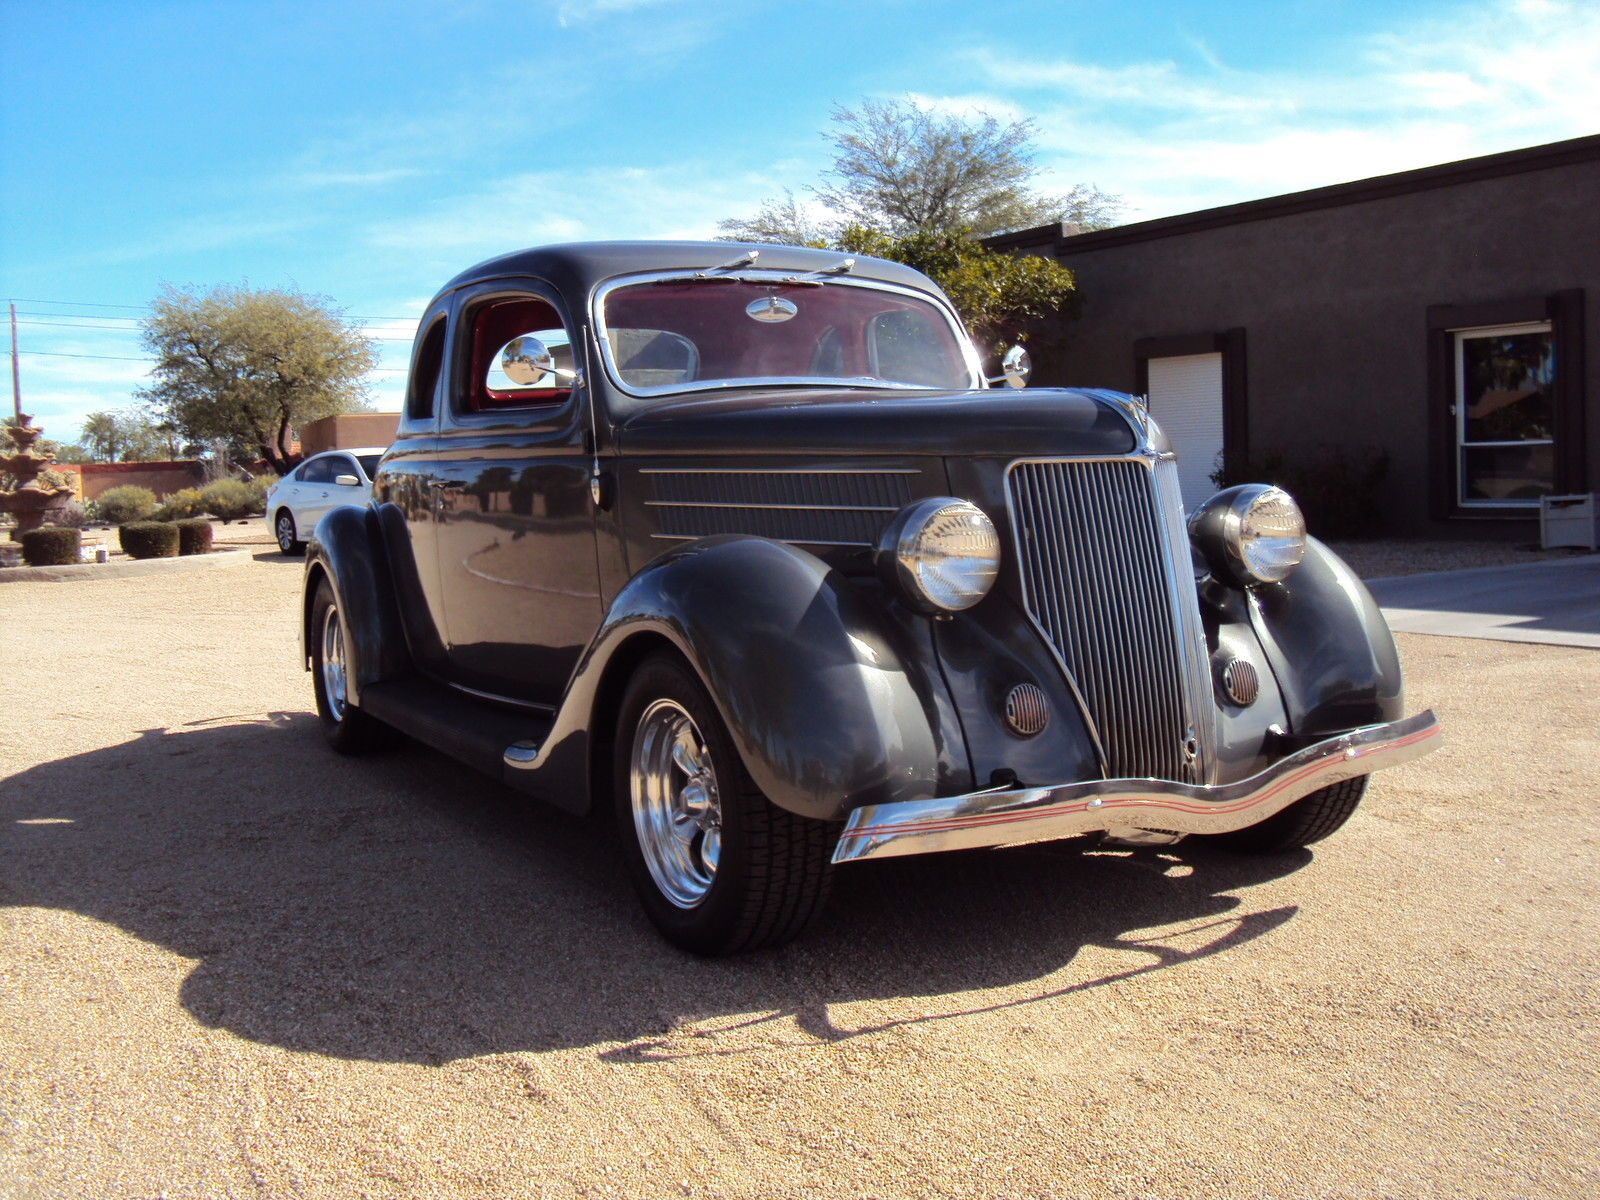 36 FORD COUPE quot SWEET quot STREET ROD SUNNY ARIZONA Classic